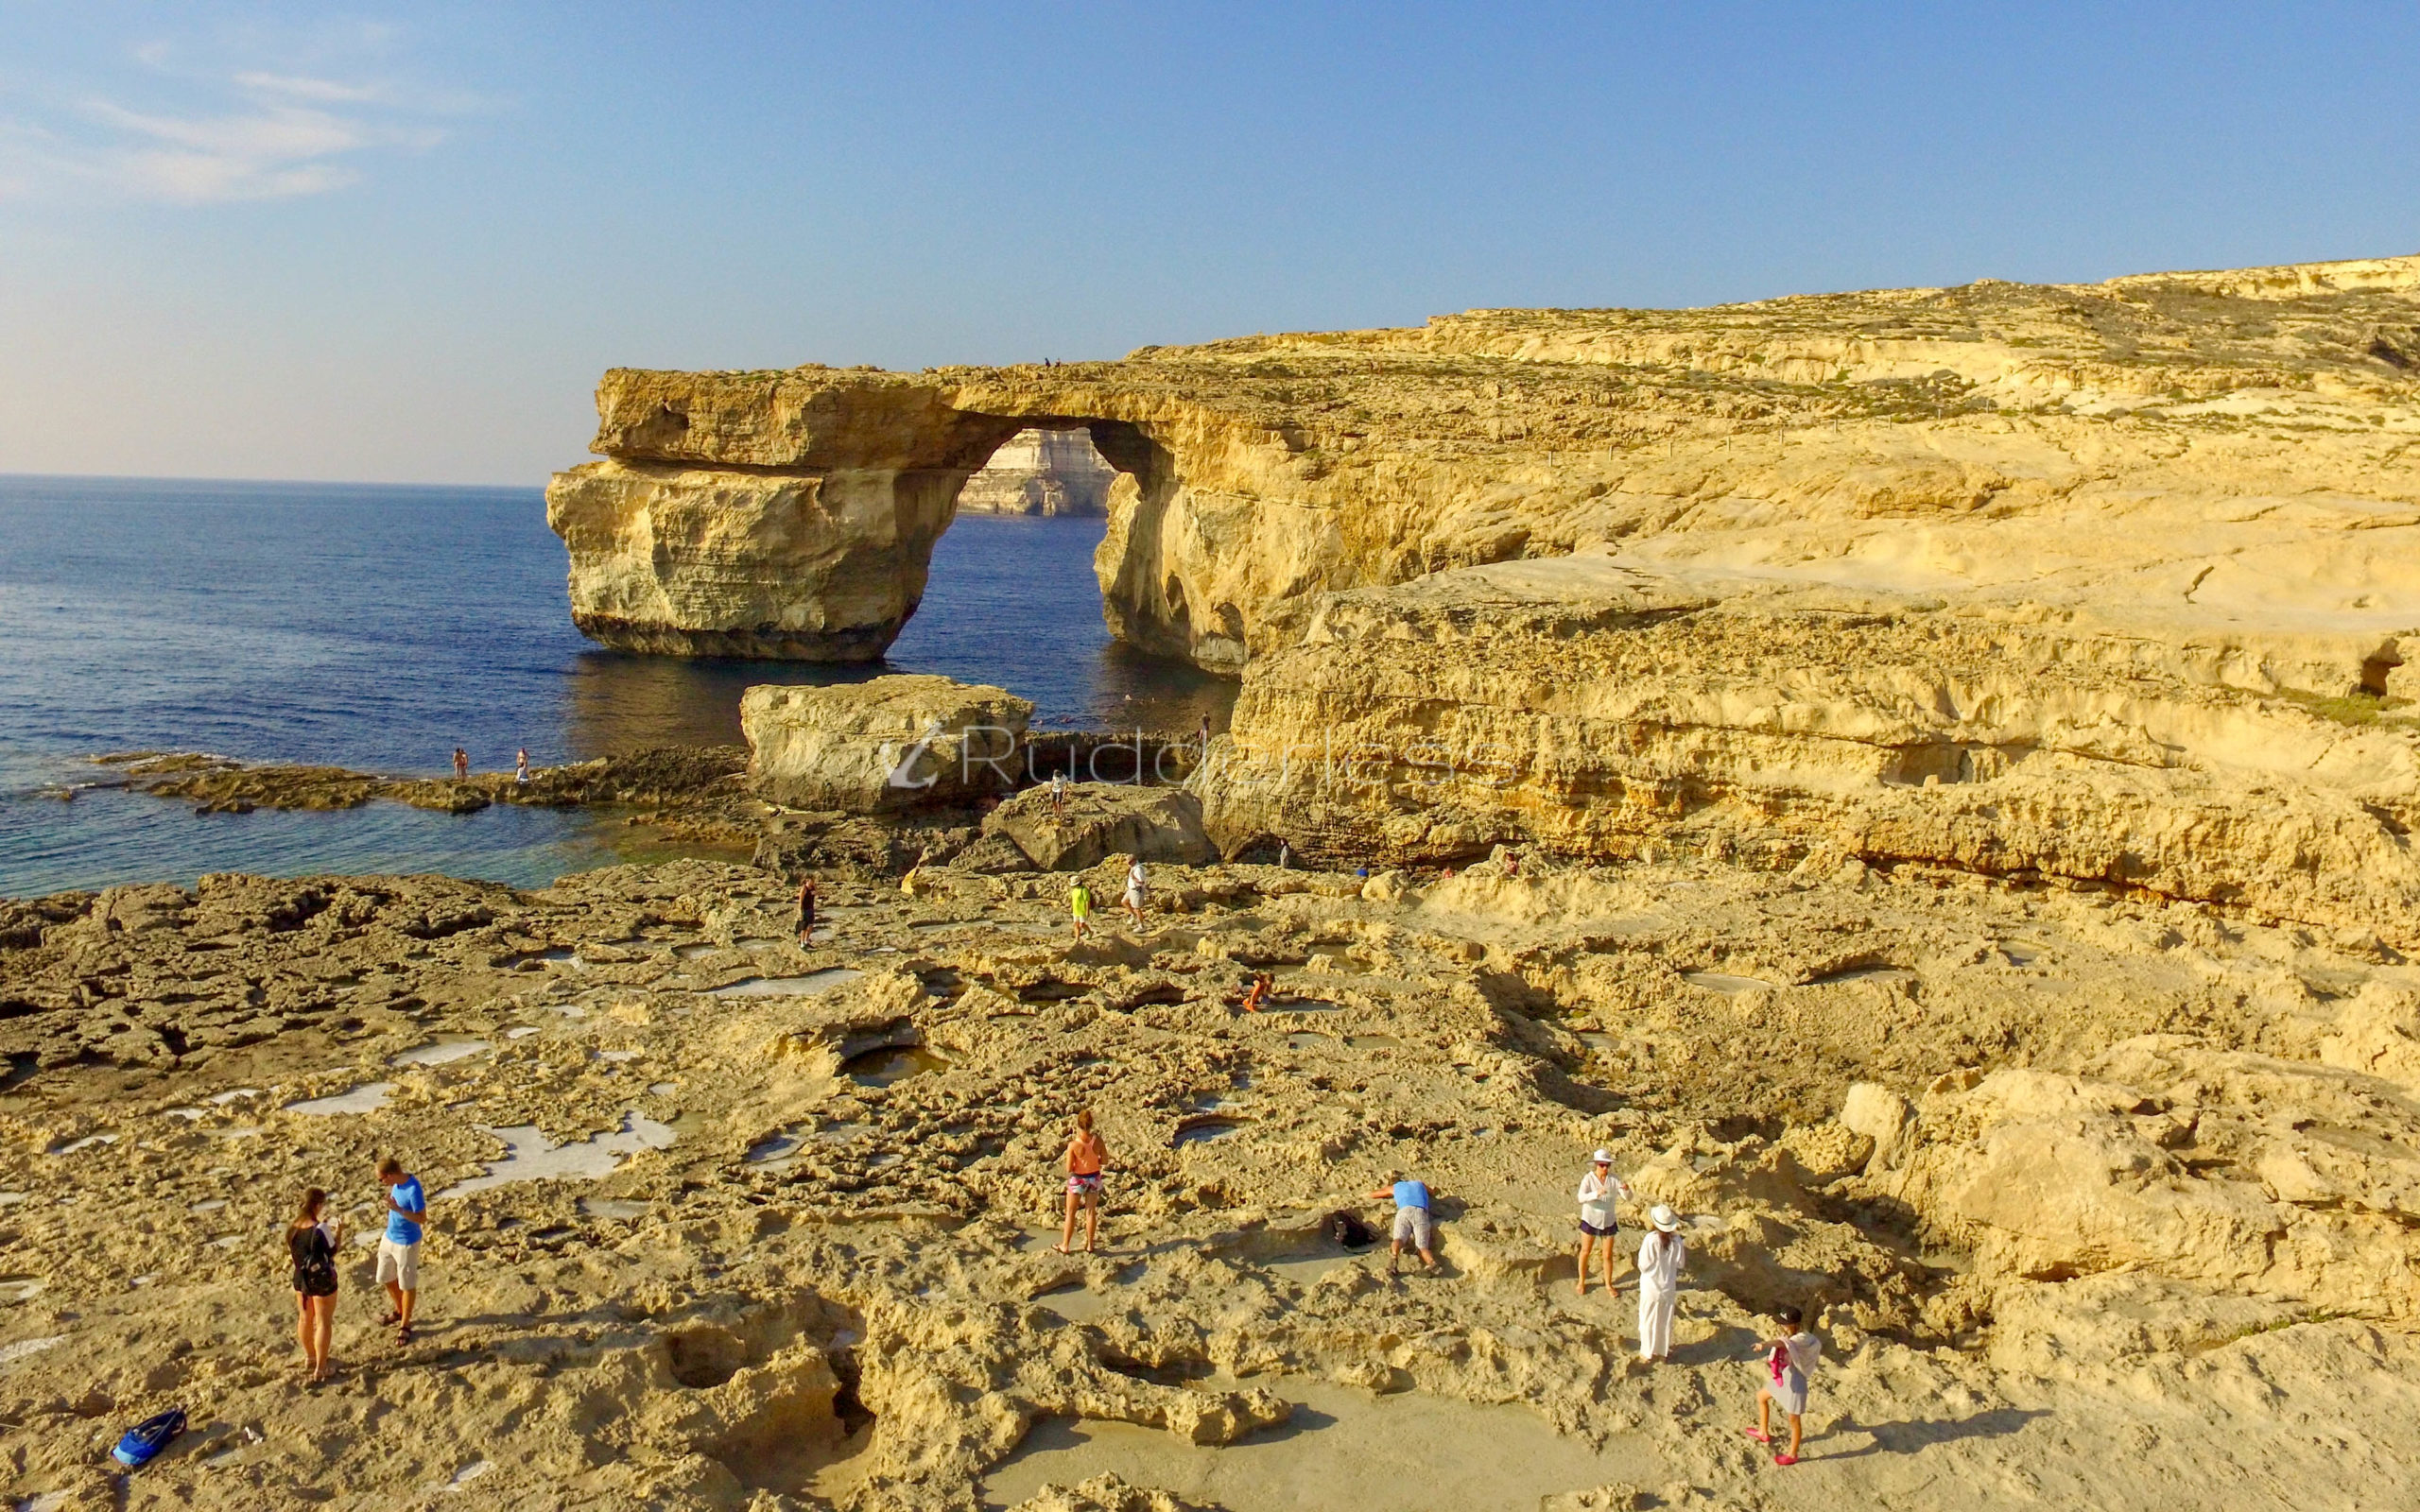 What to see in malta in 3 days - THE CITADEL & CATHEDRAL OF THE ASSUMPTION